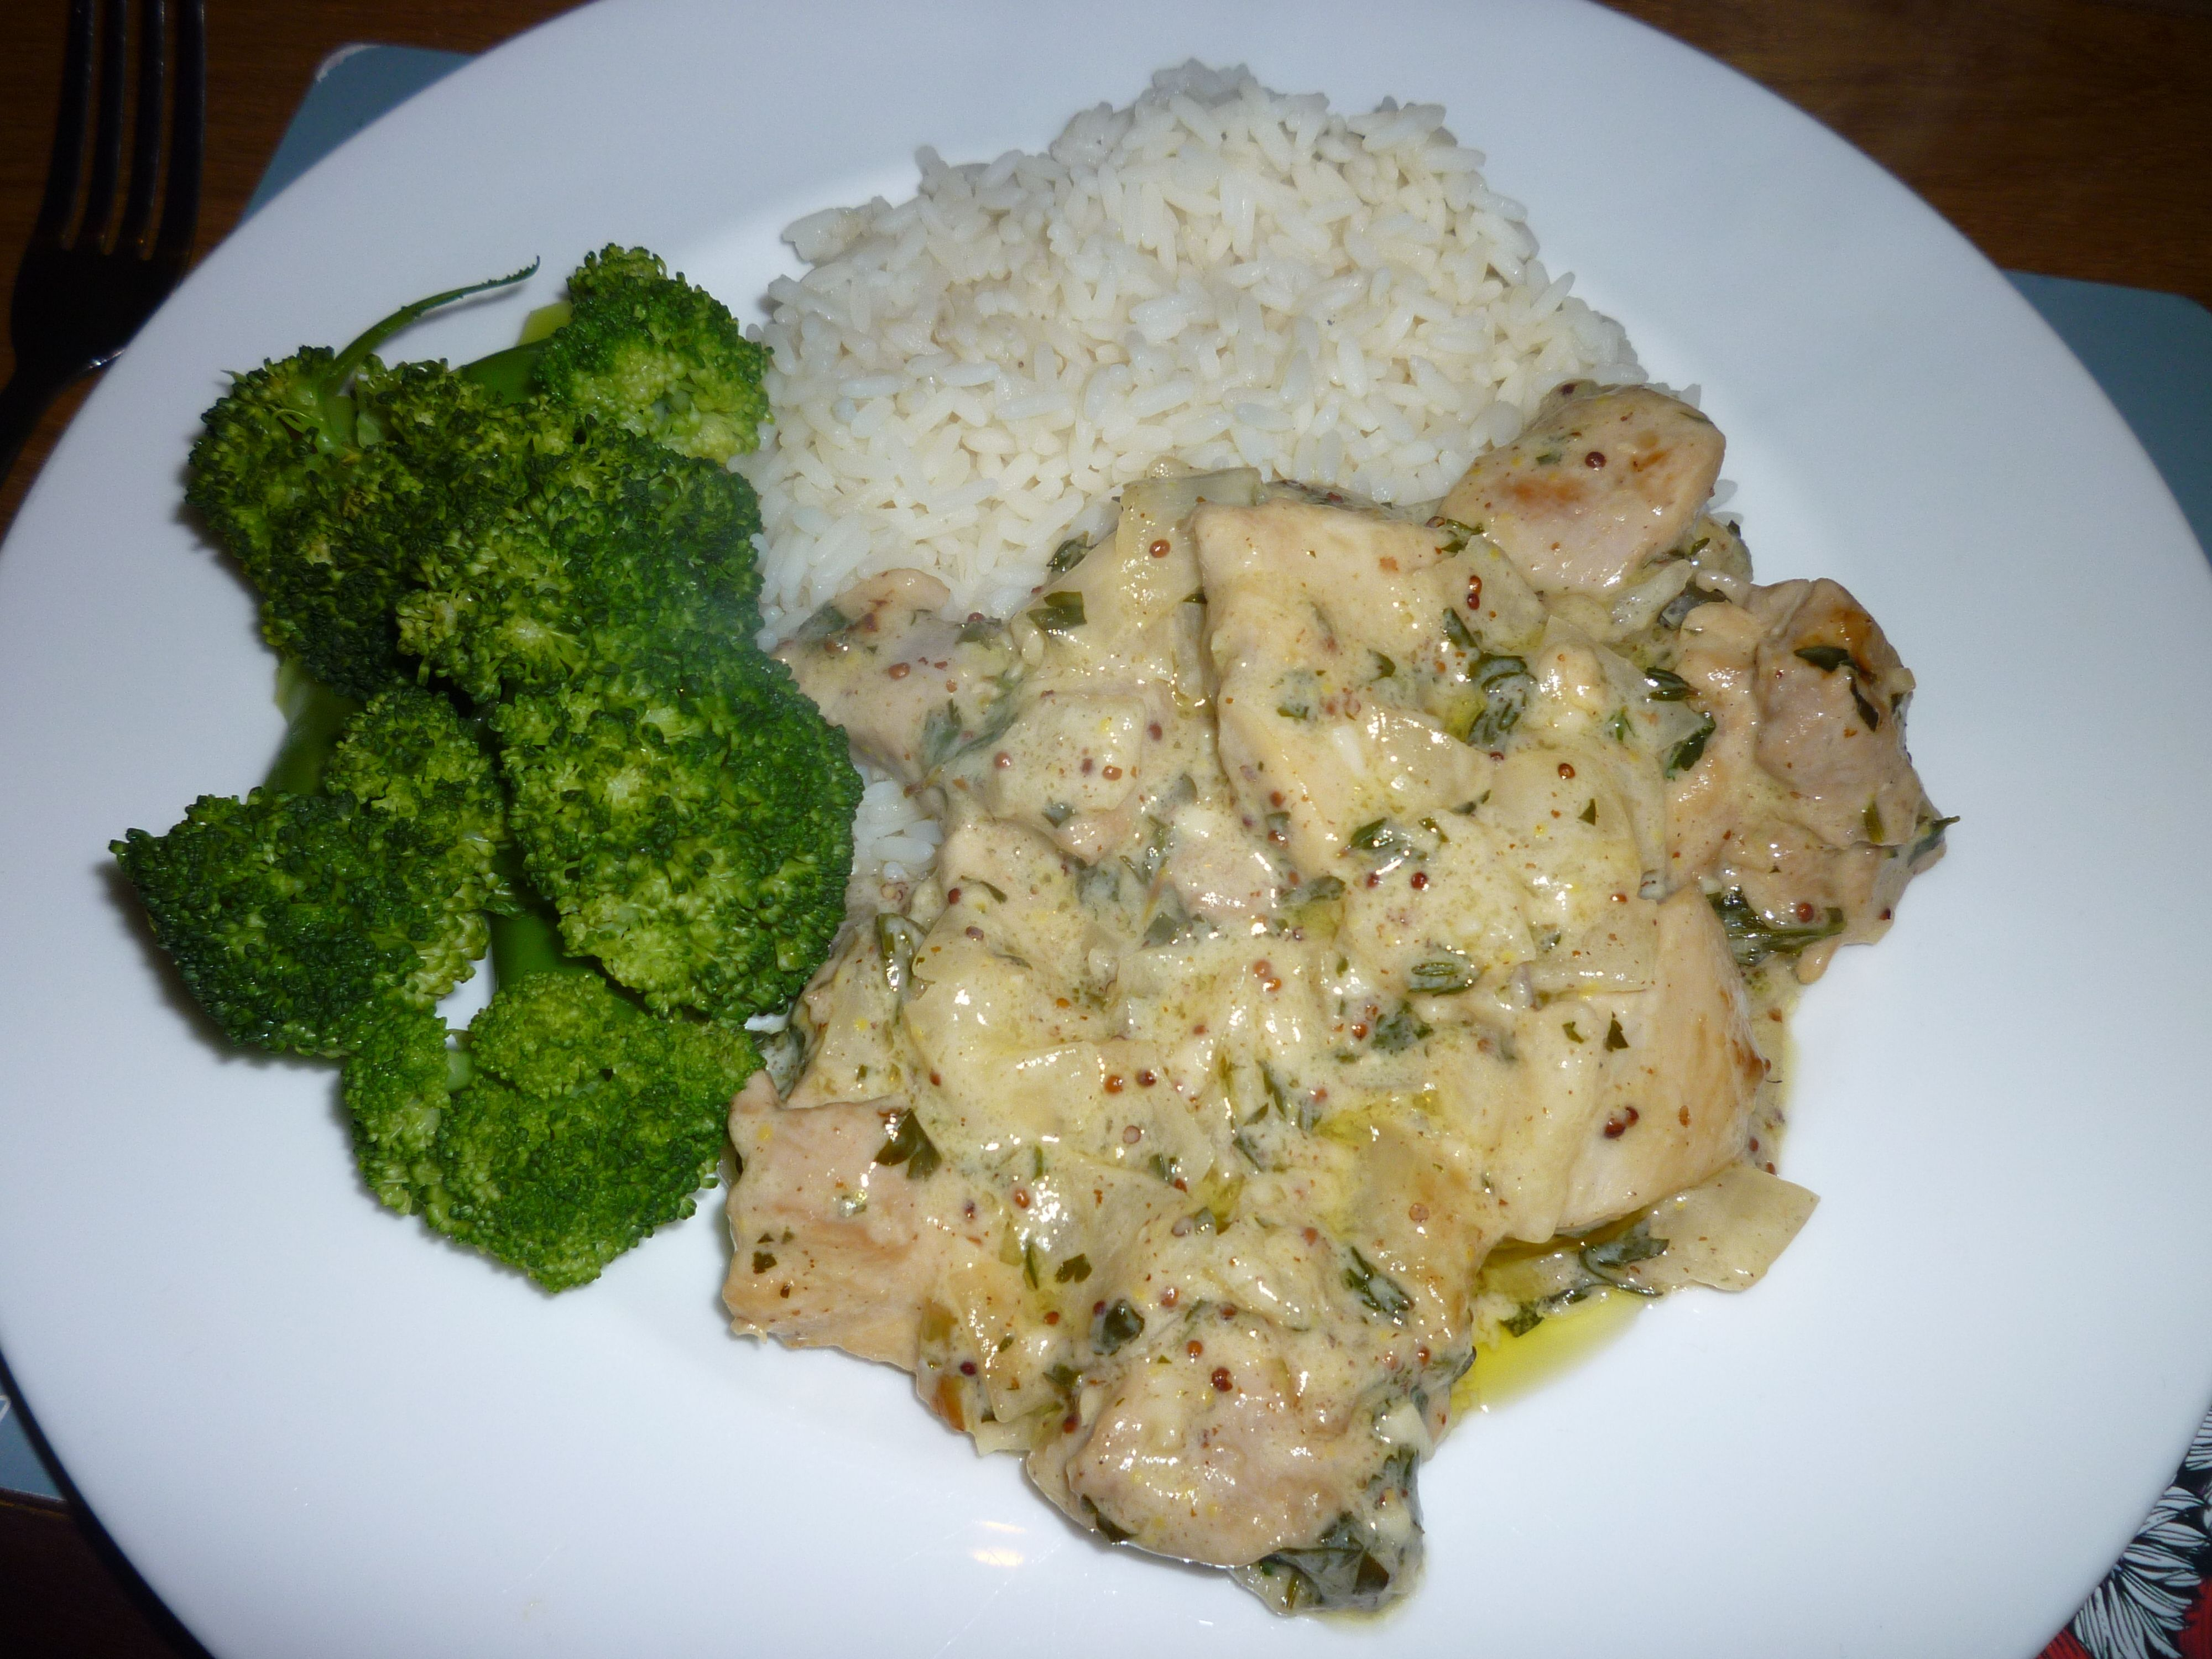 Cider mustard and herb chicken served with rice and broccoli this cider mustard and herb chicken served with rice and broccoli this was so forumfinder Gallery